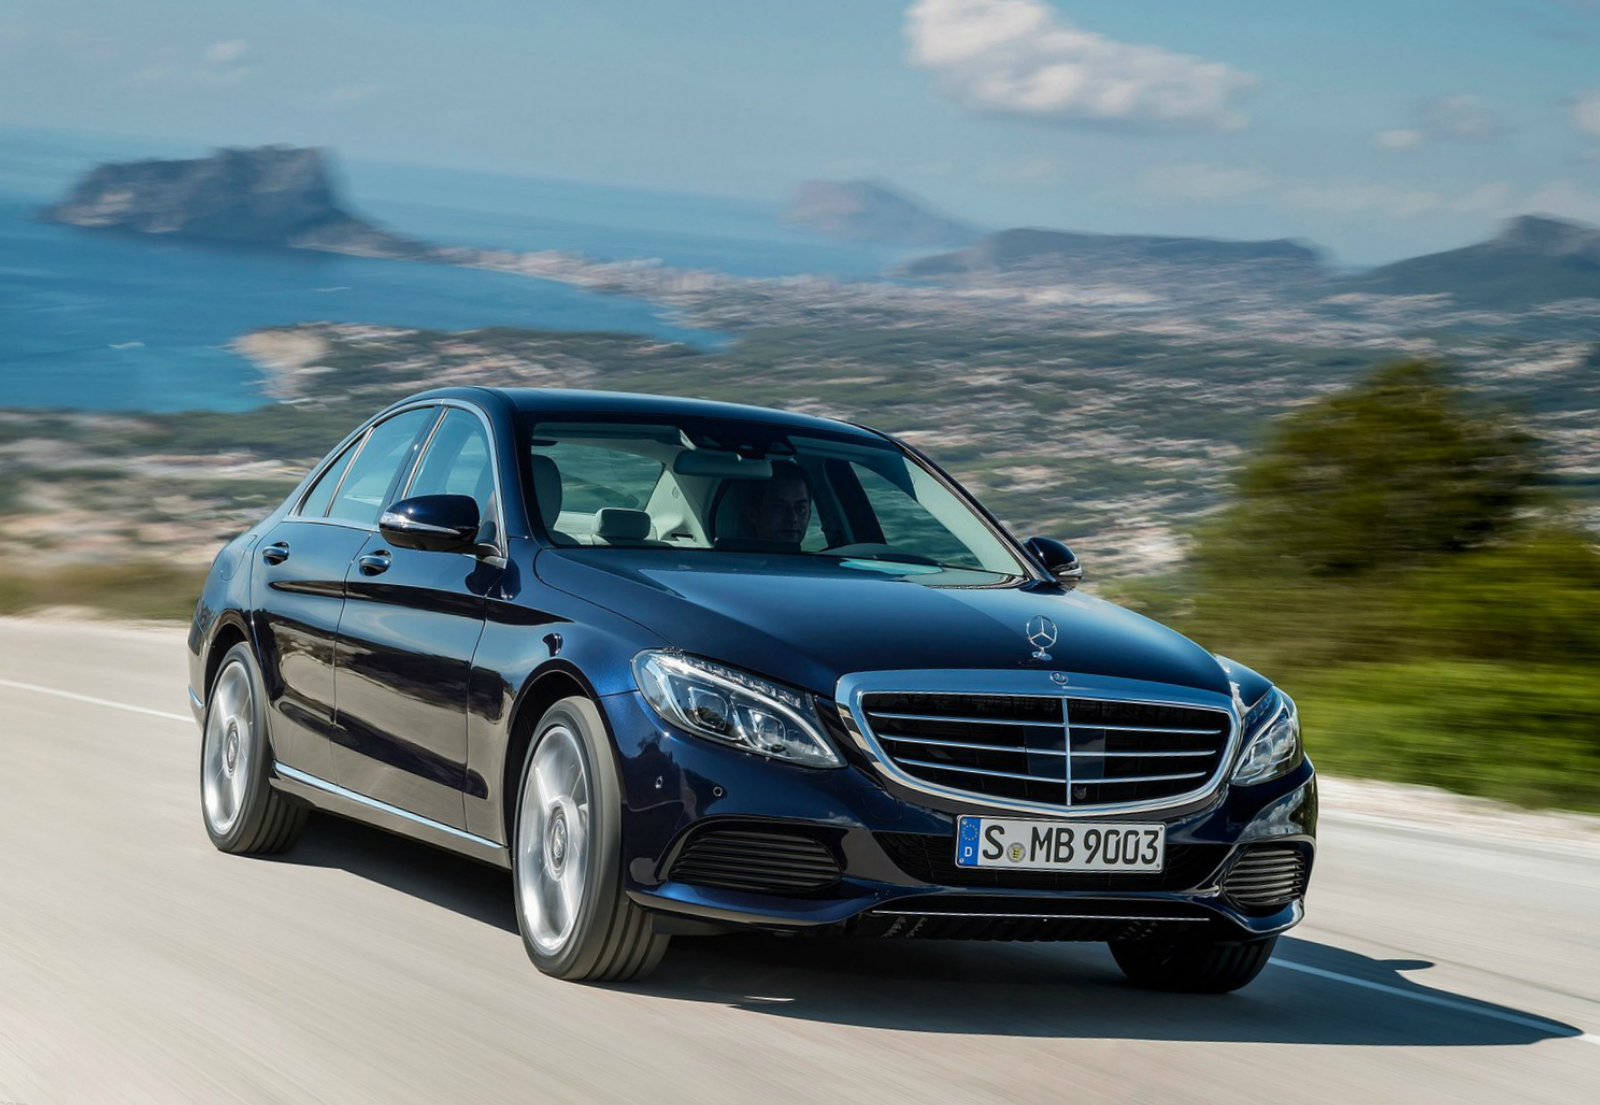 Mercedes benz c class 2015 reviews mercedes benz c class for Benz mercedes c class